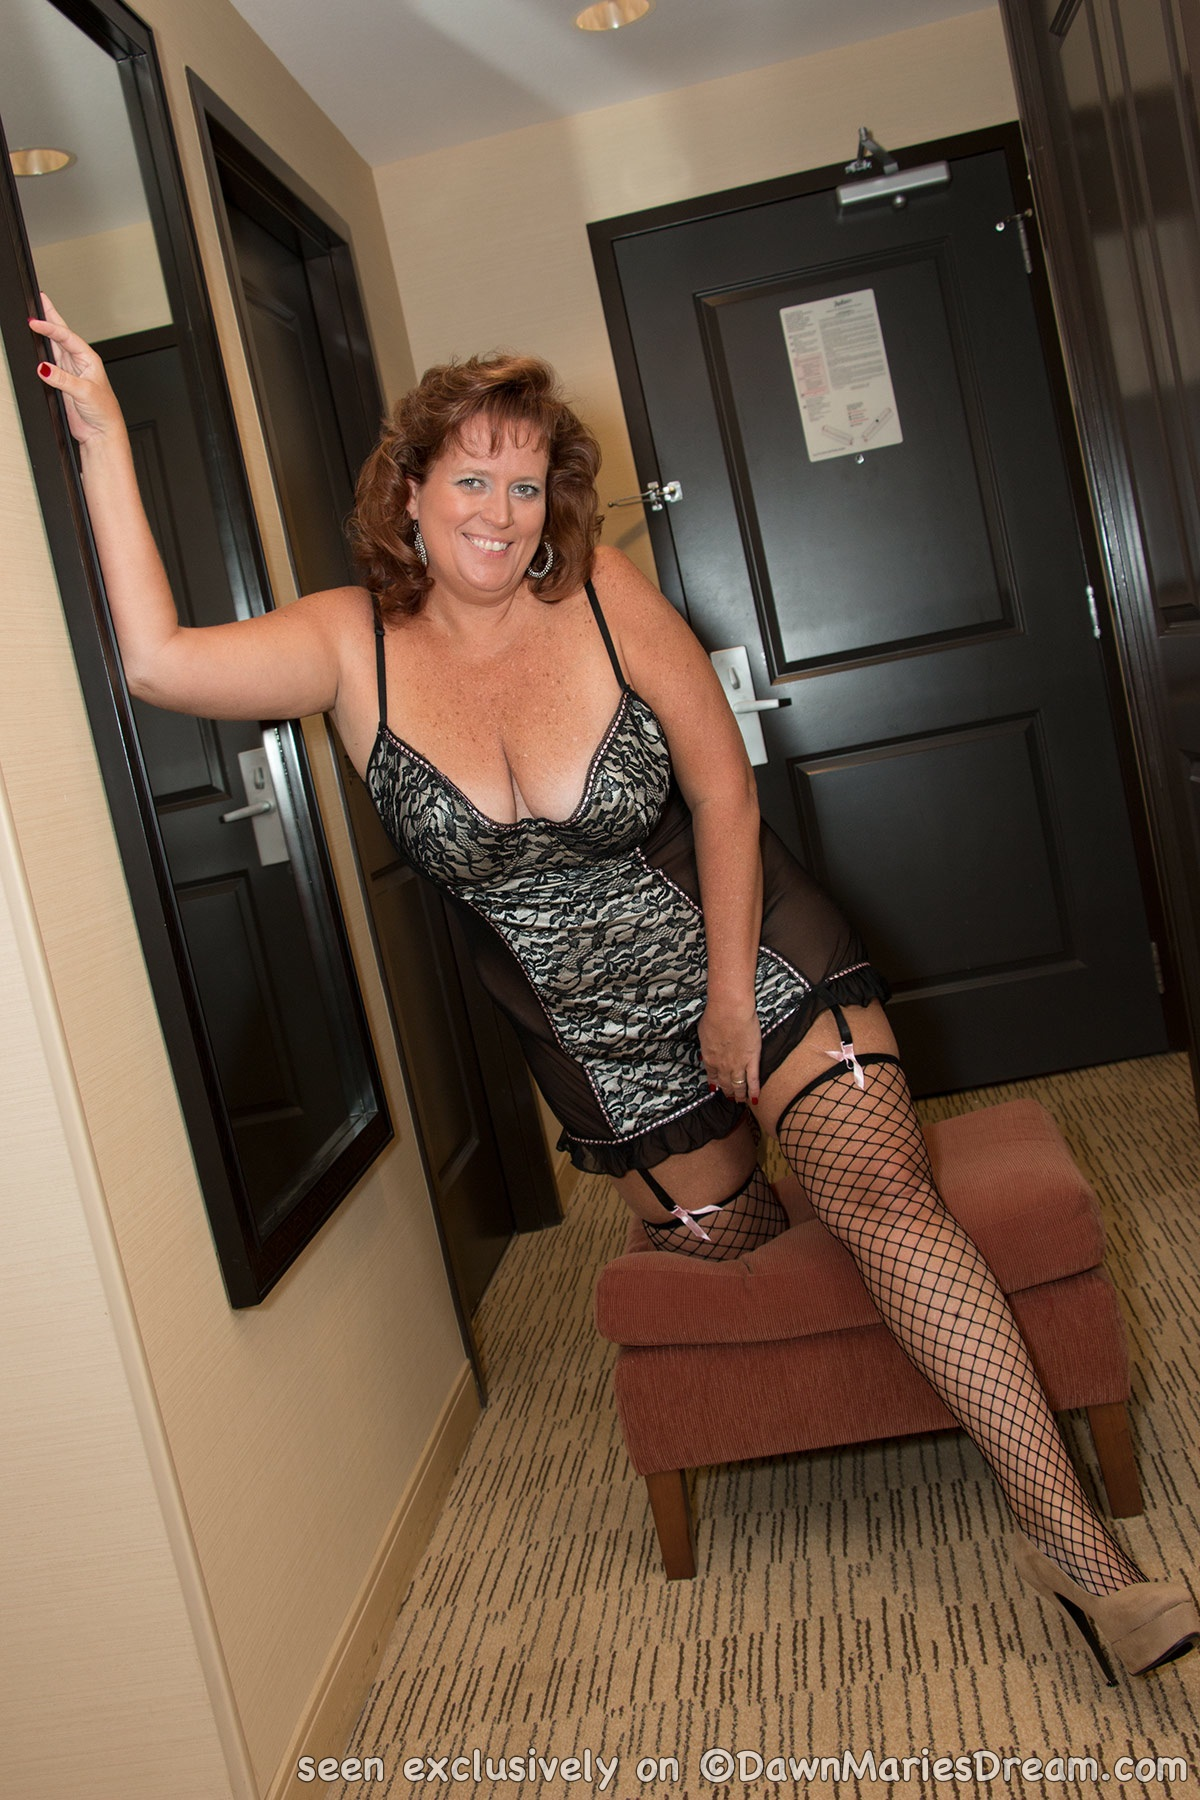 Dawn marie pantyhose are